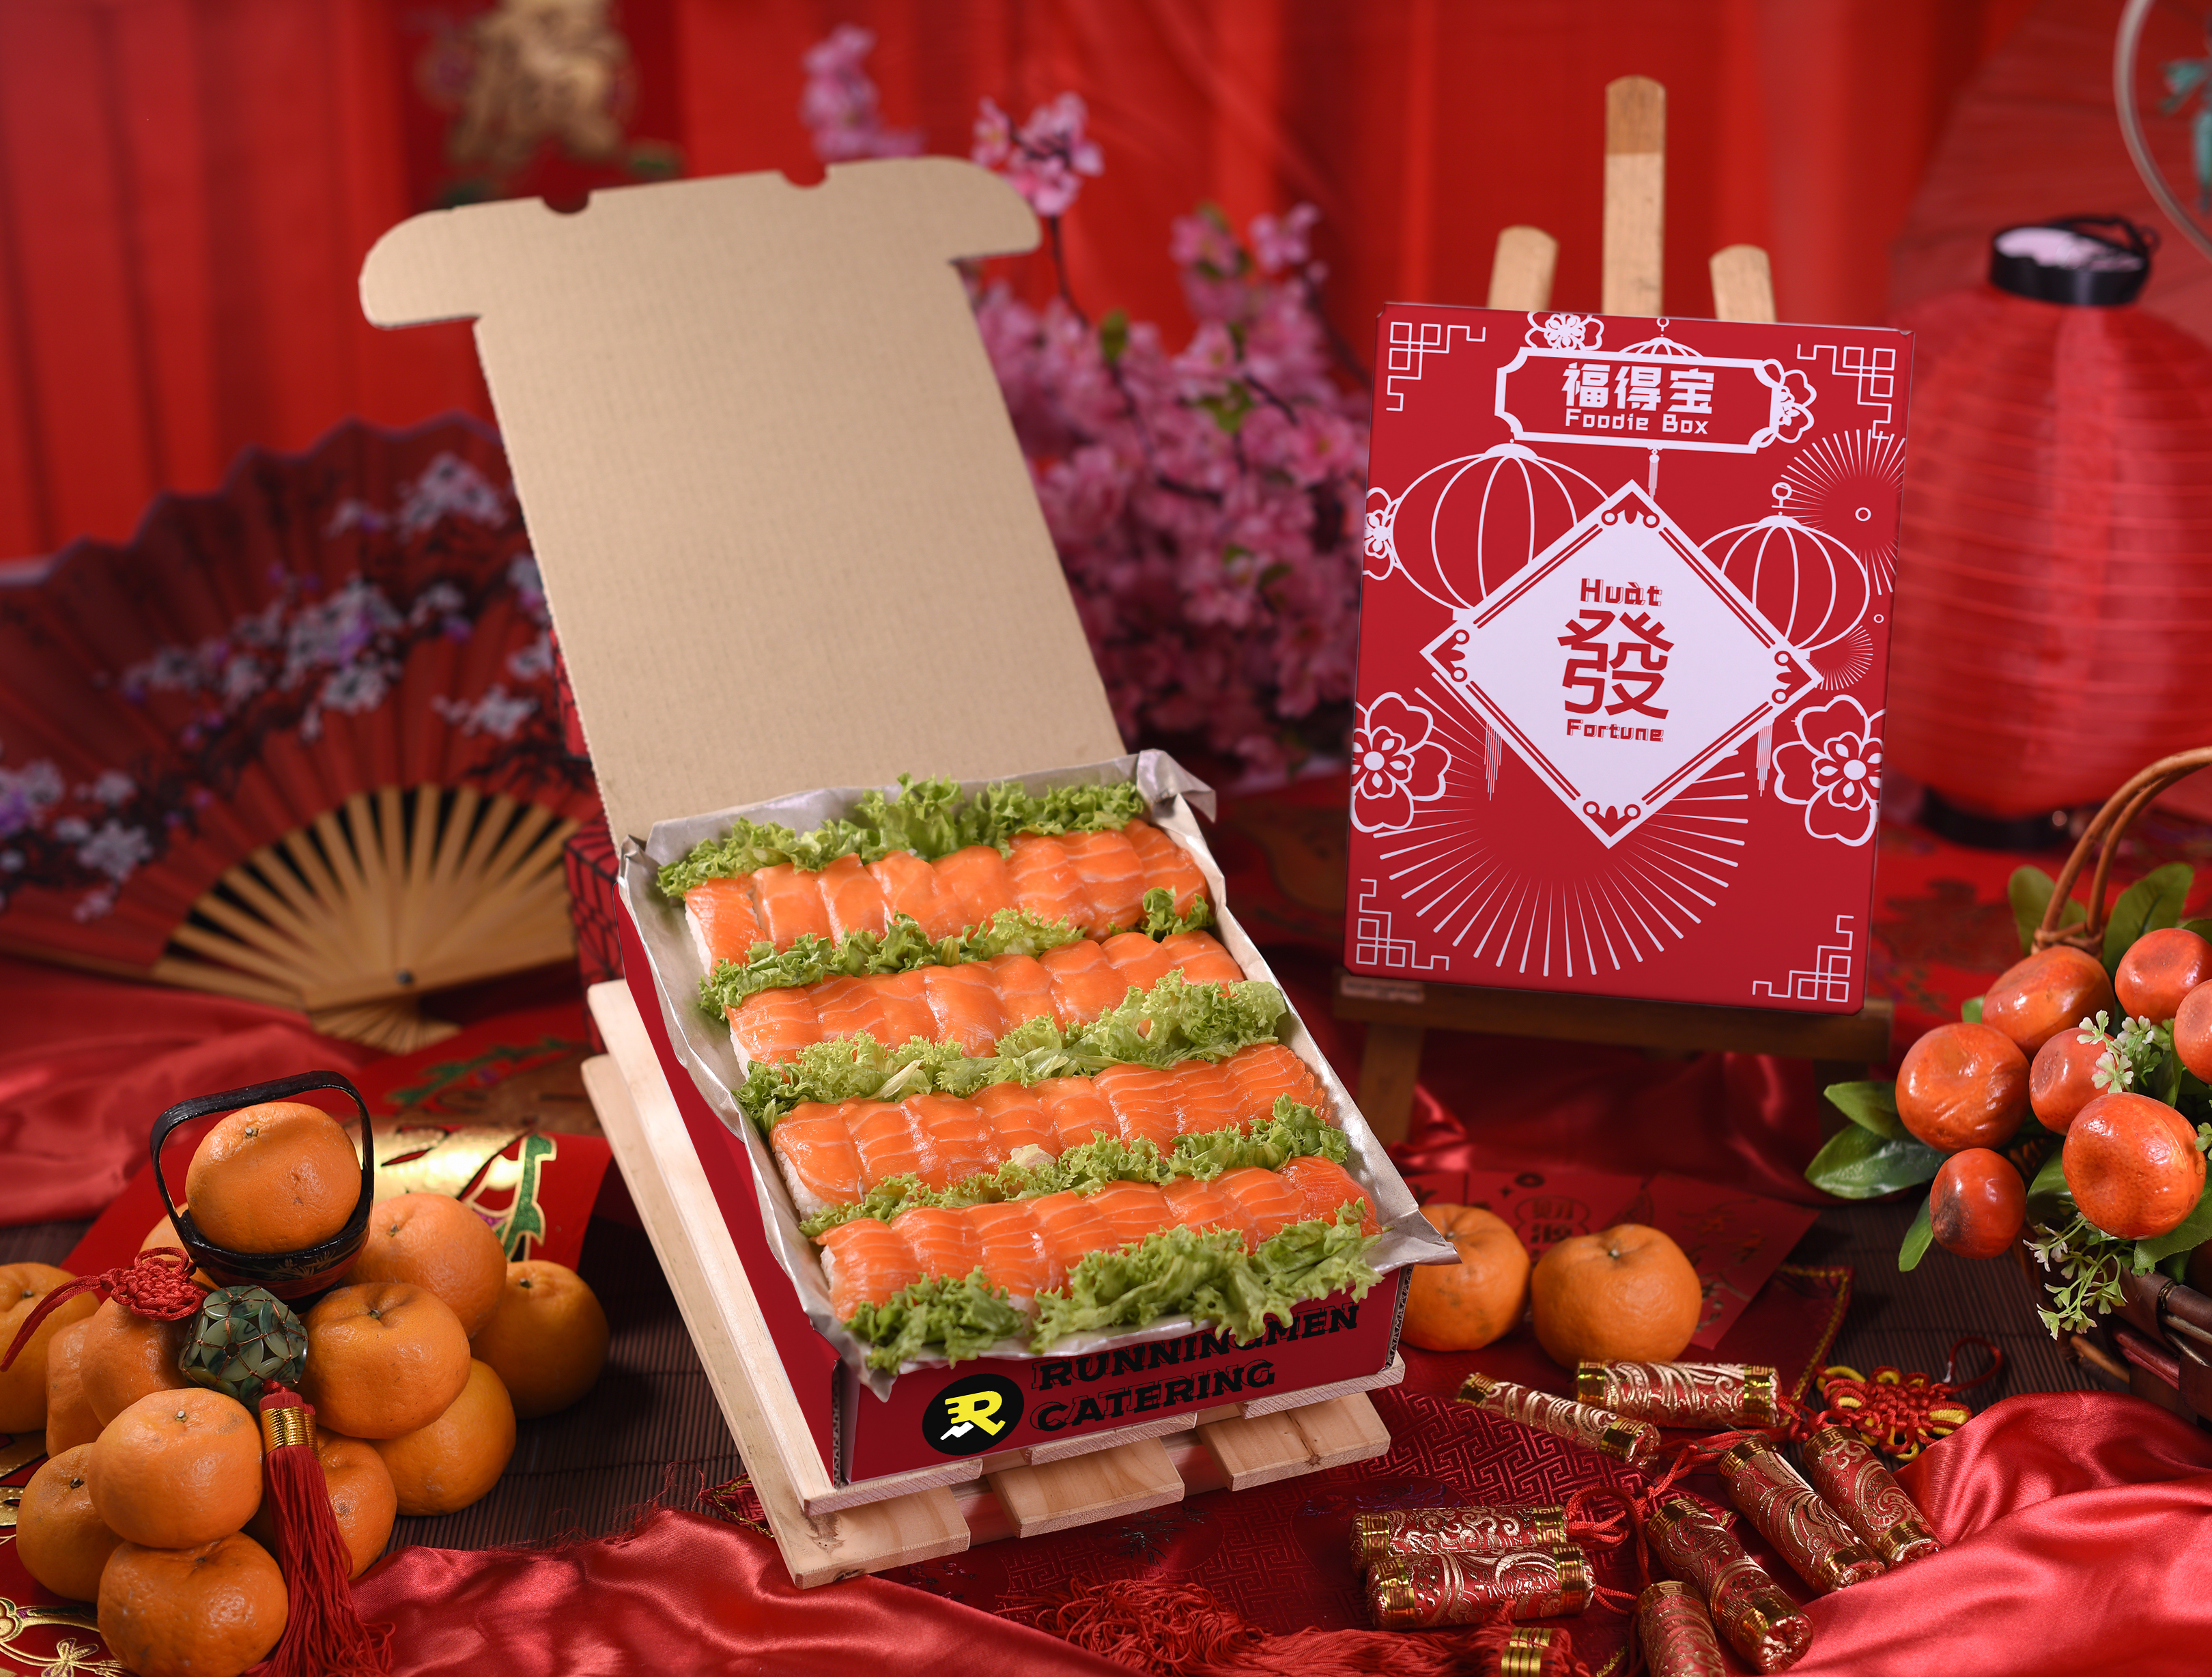 runningmen catering chinese new year 2021 foodie box cny 2021 packaging with full salmon sushi box